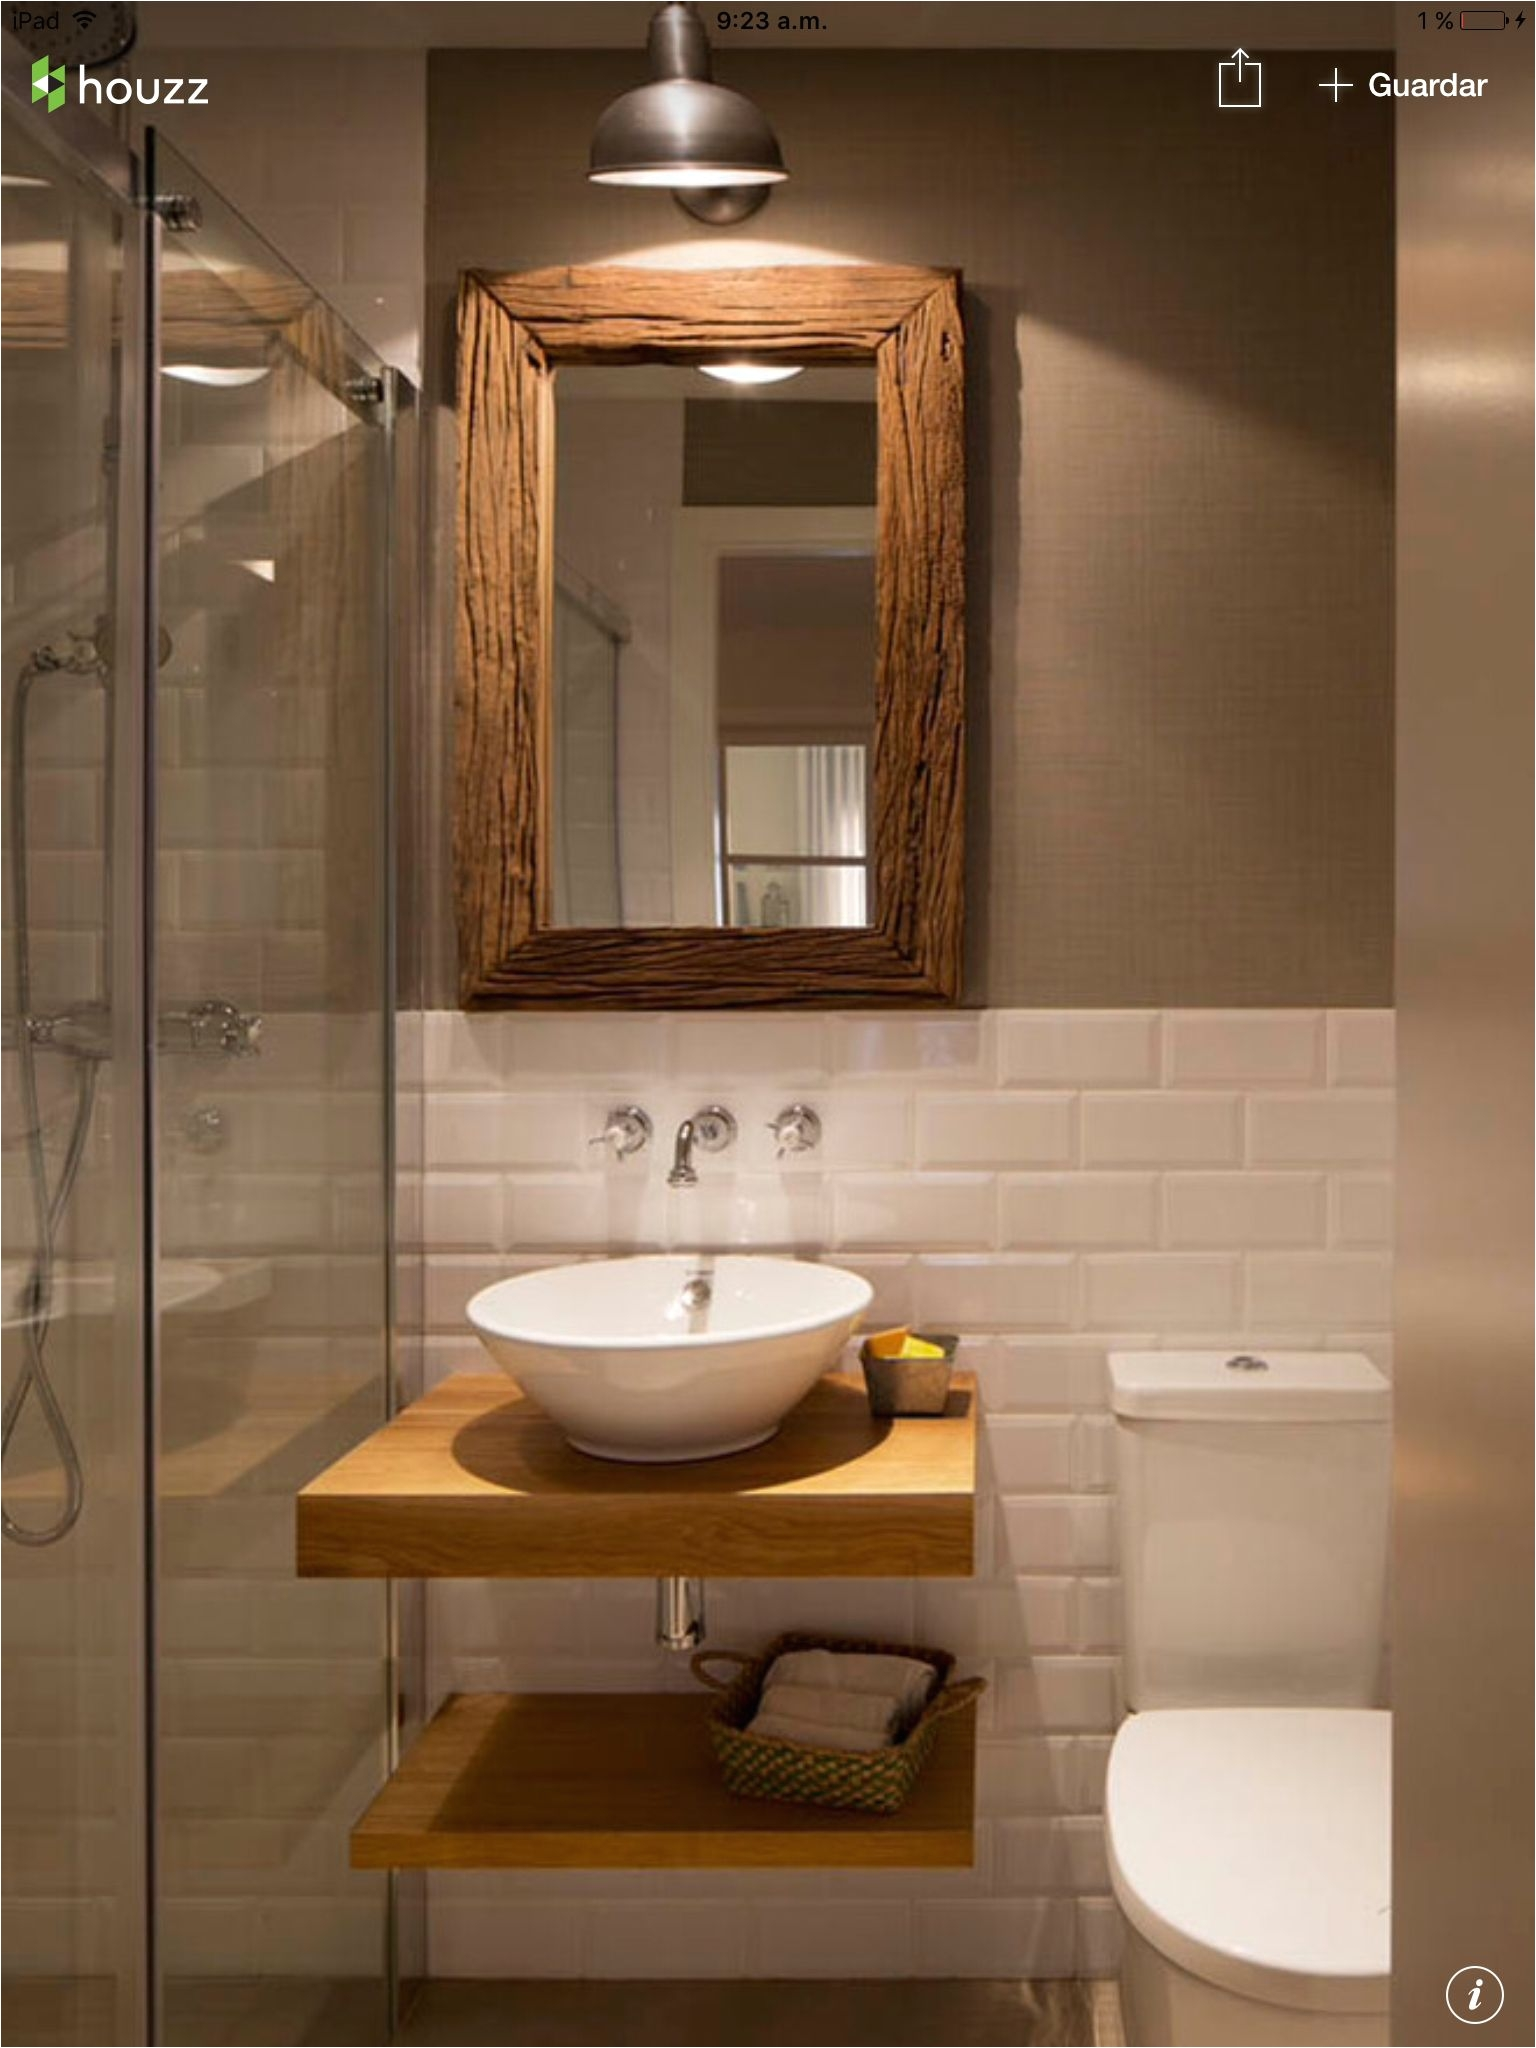 Half white tiles with contrast brown wall and white and brown bathroom fixtures and accents